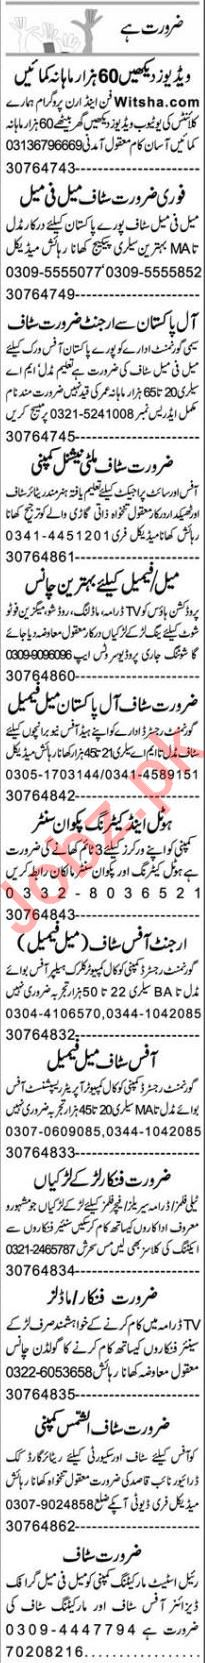 Express Sunday Faisalabad Classified Ads 7 March 2021